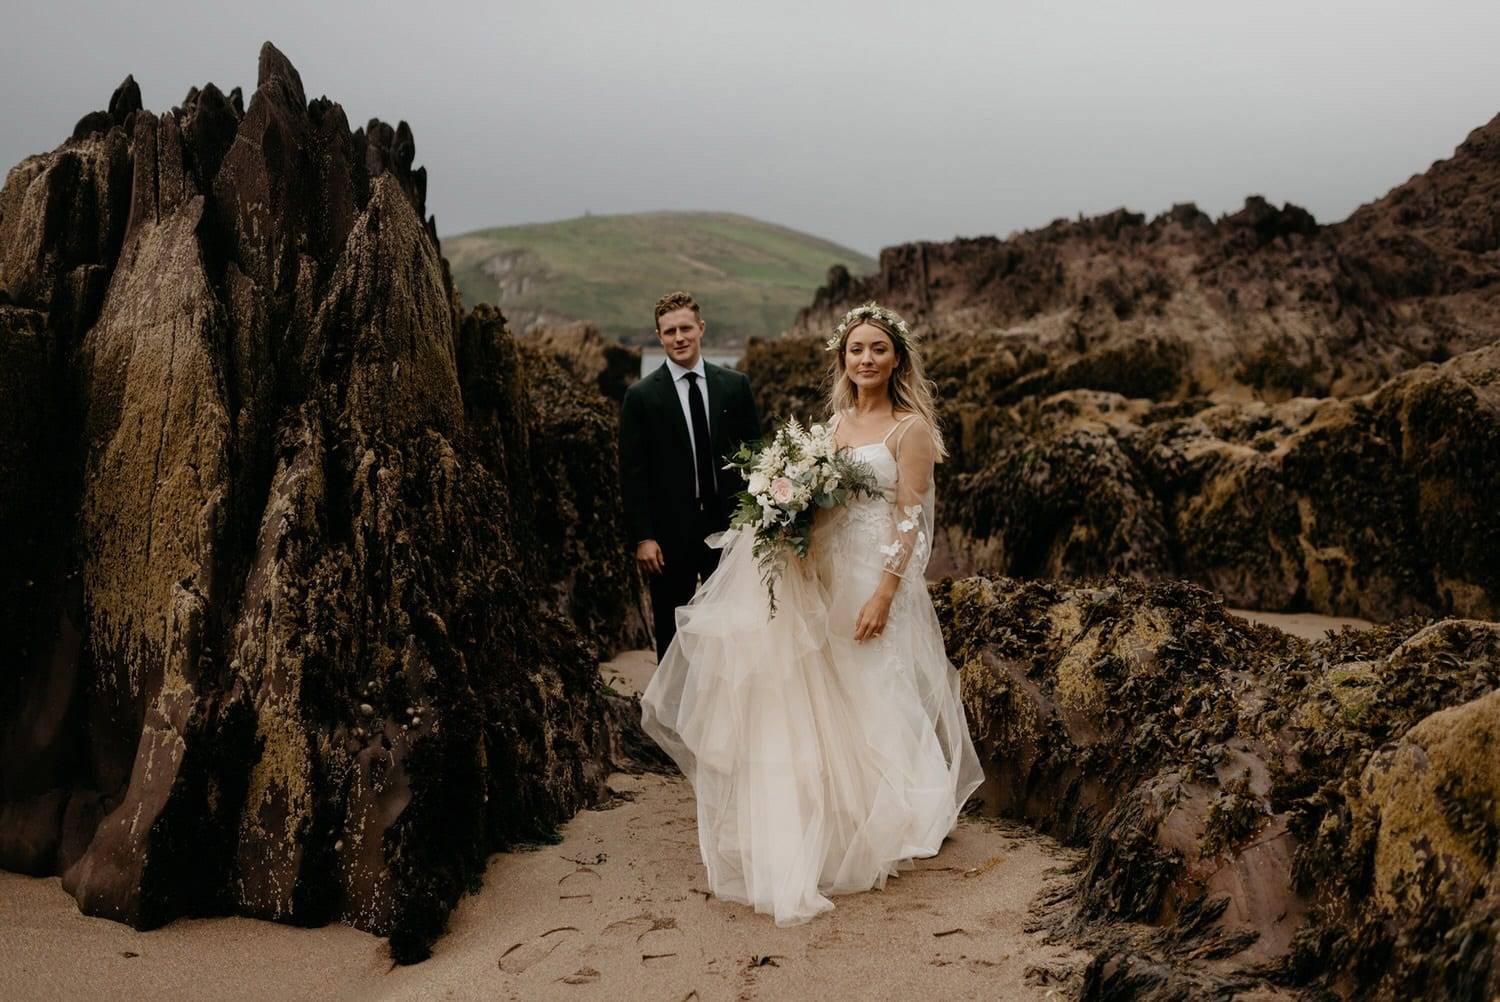 A Foggy Ireland Wedding | Irish Wedding Photography by Colagrossi & Co.